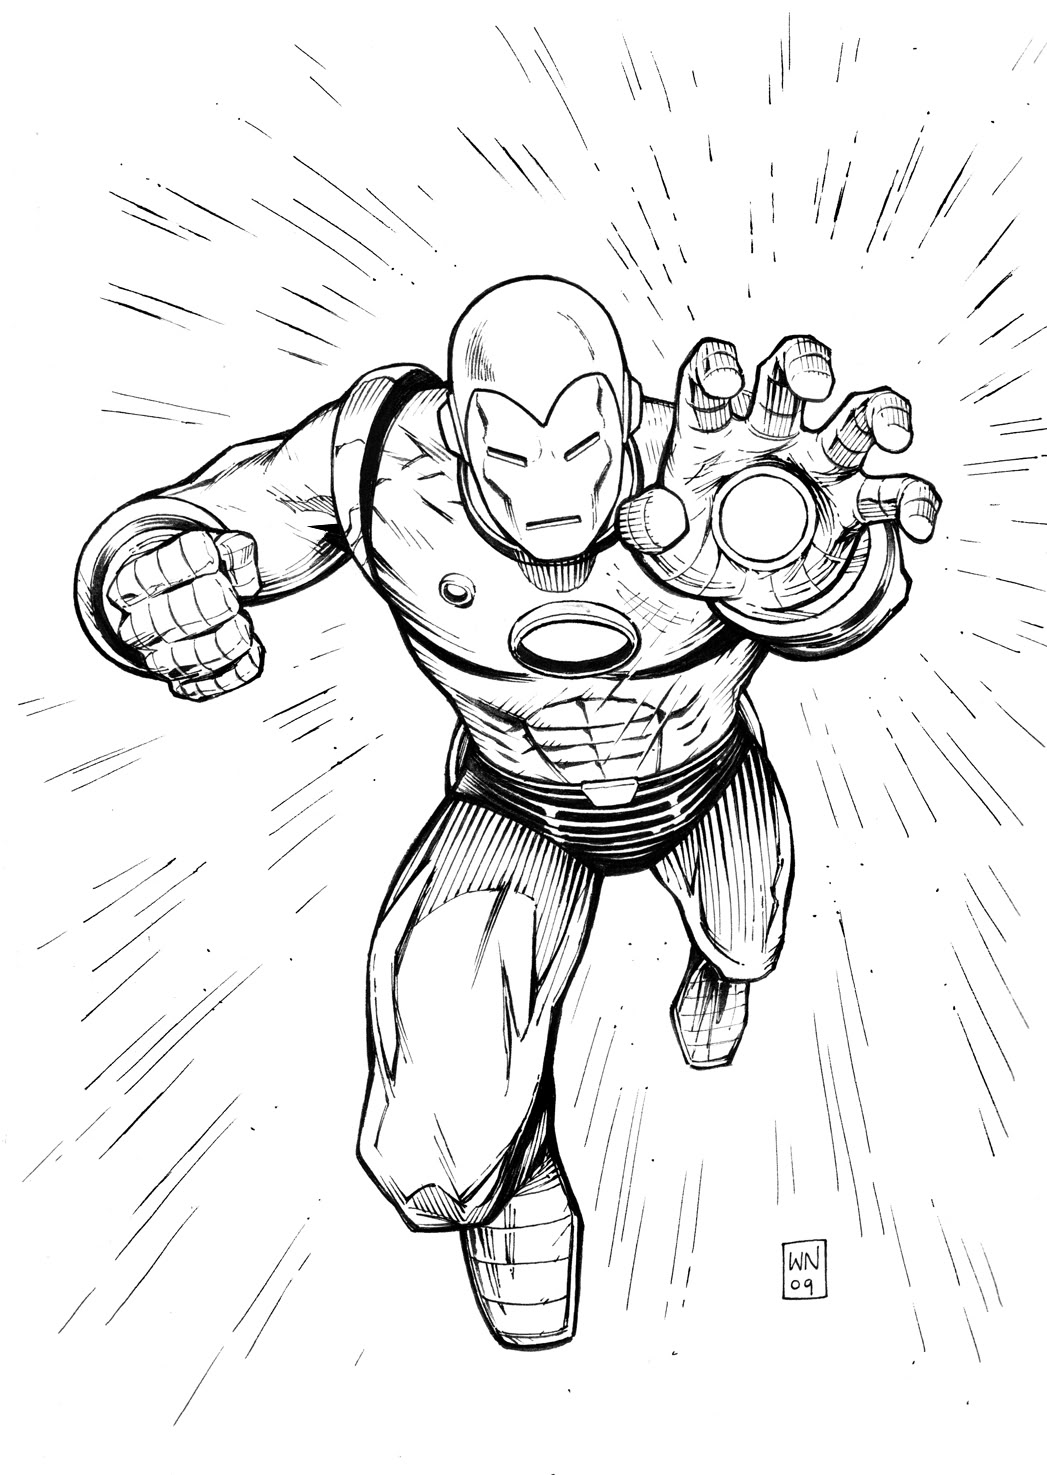 iron man printable images free printable iron man coloring pages for kids best printable man images iron